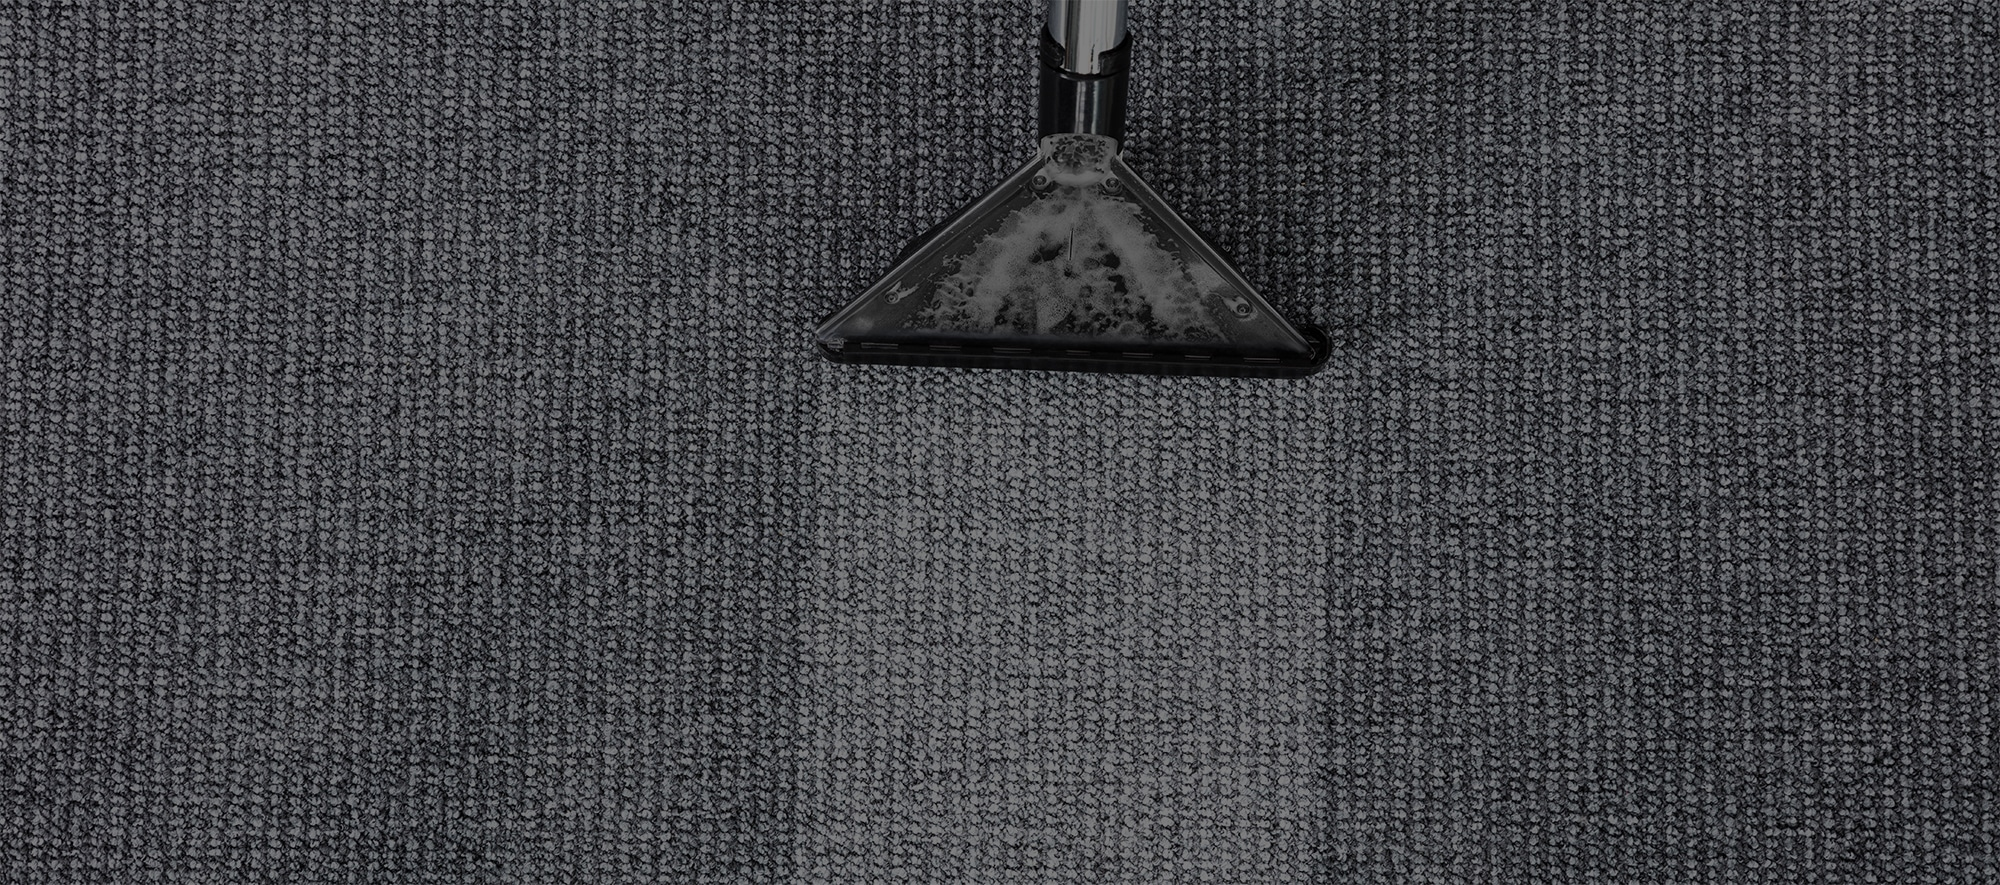 Contact Central Steam Cleaning for Carpet Cleaning Services